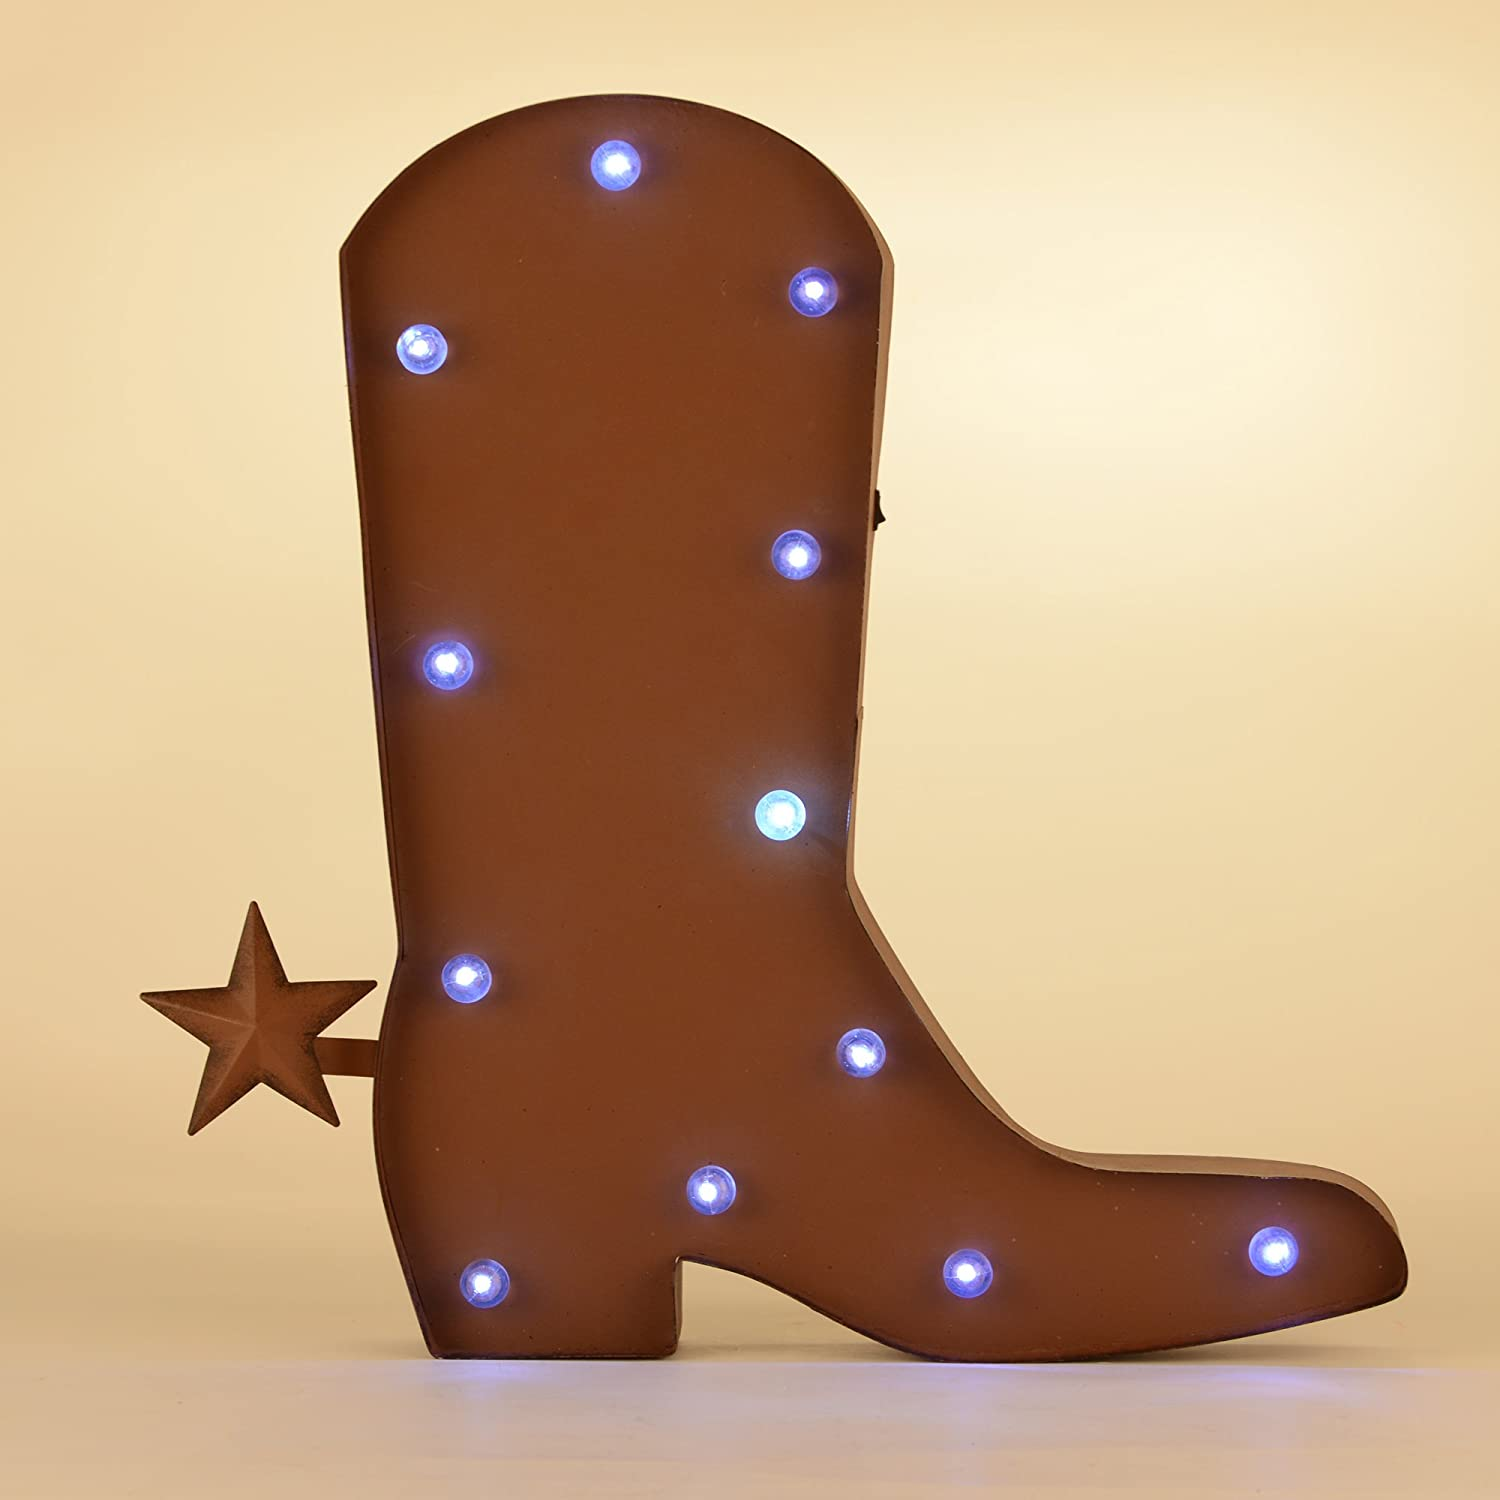 Glitz Home Rustic Marquee Led Lighted Western Cowboy Boot Sign Wall Decor, 18&quot, Red